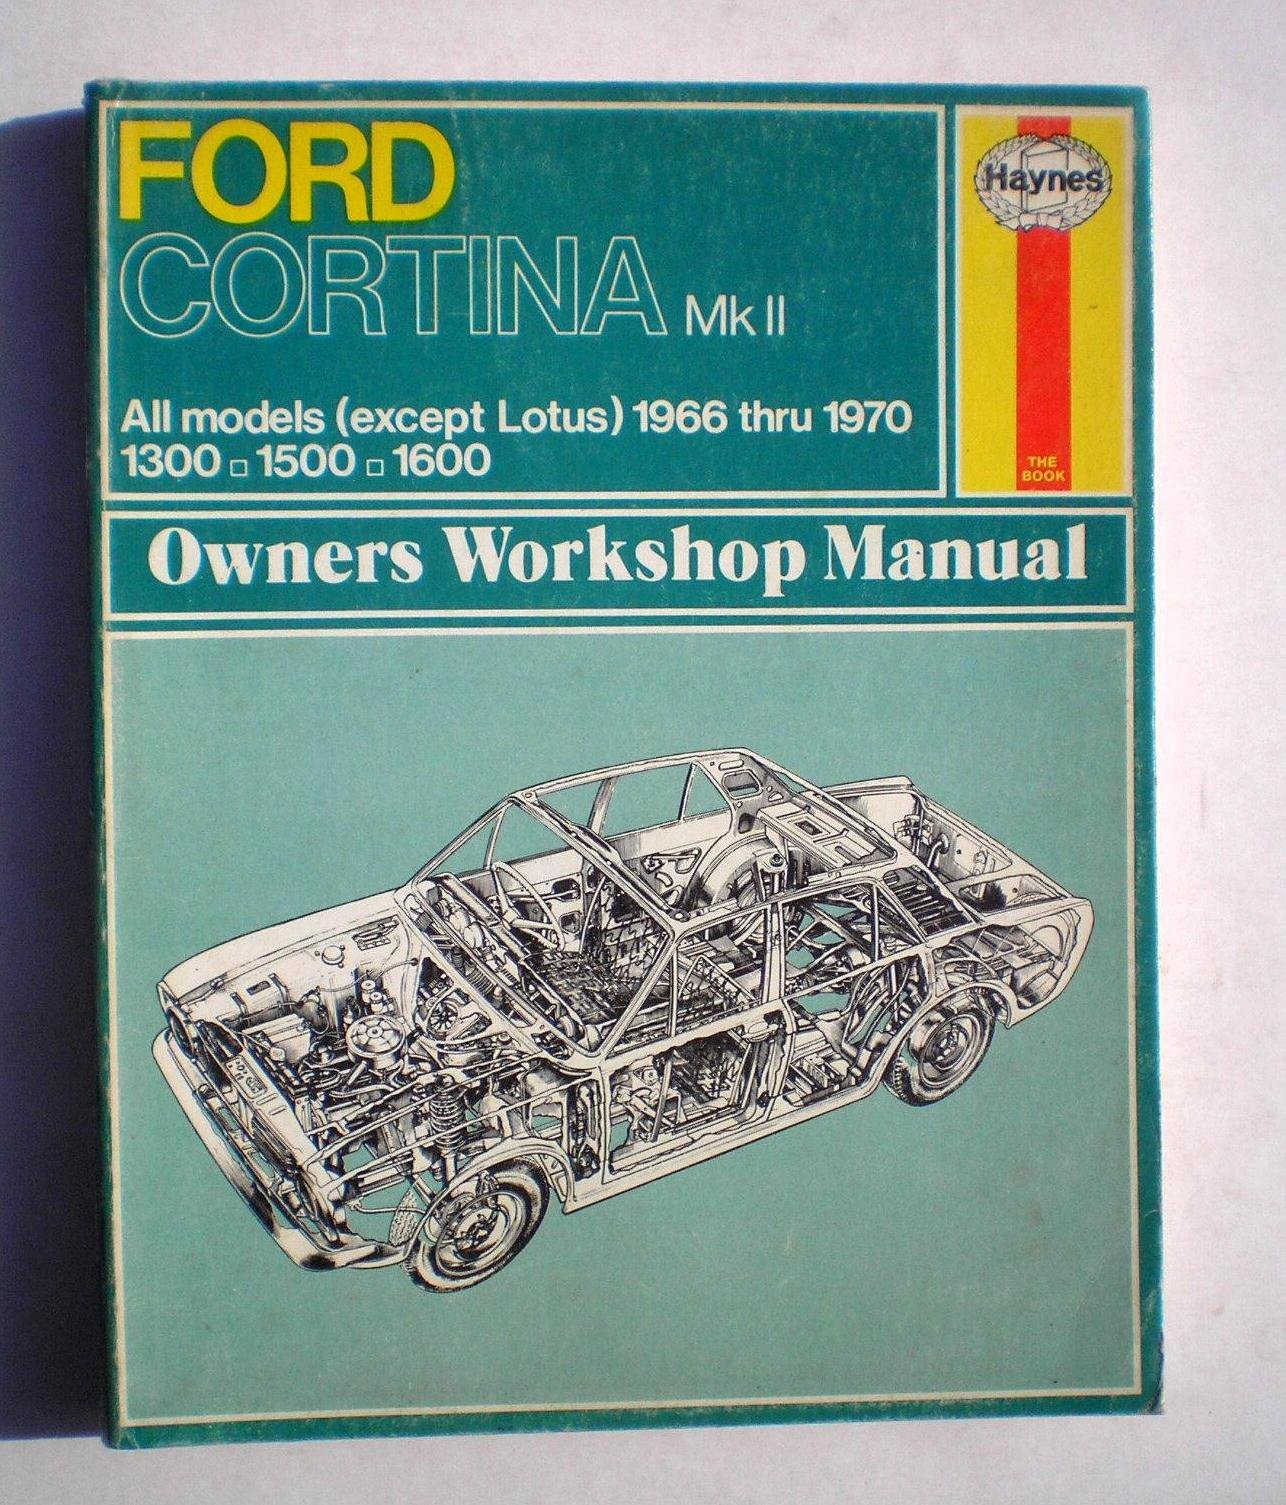 ford cortina mark 2 owner s workshop manual amazon co uk j h